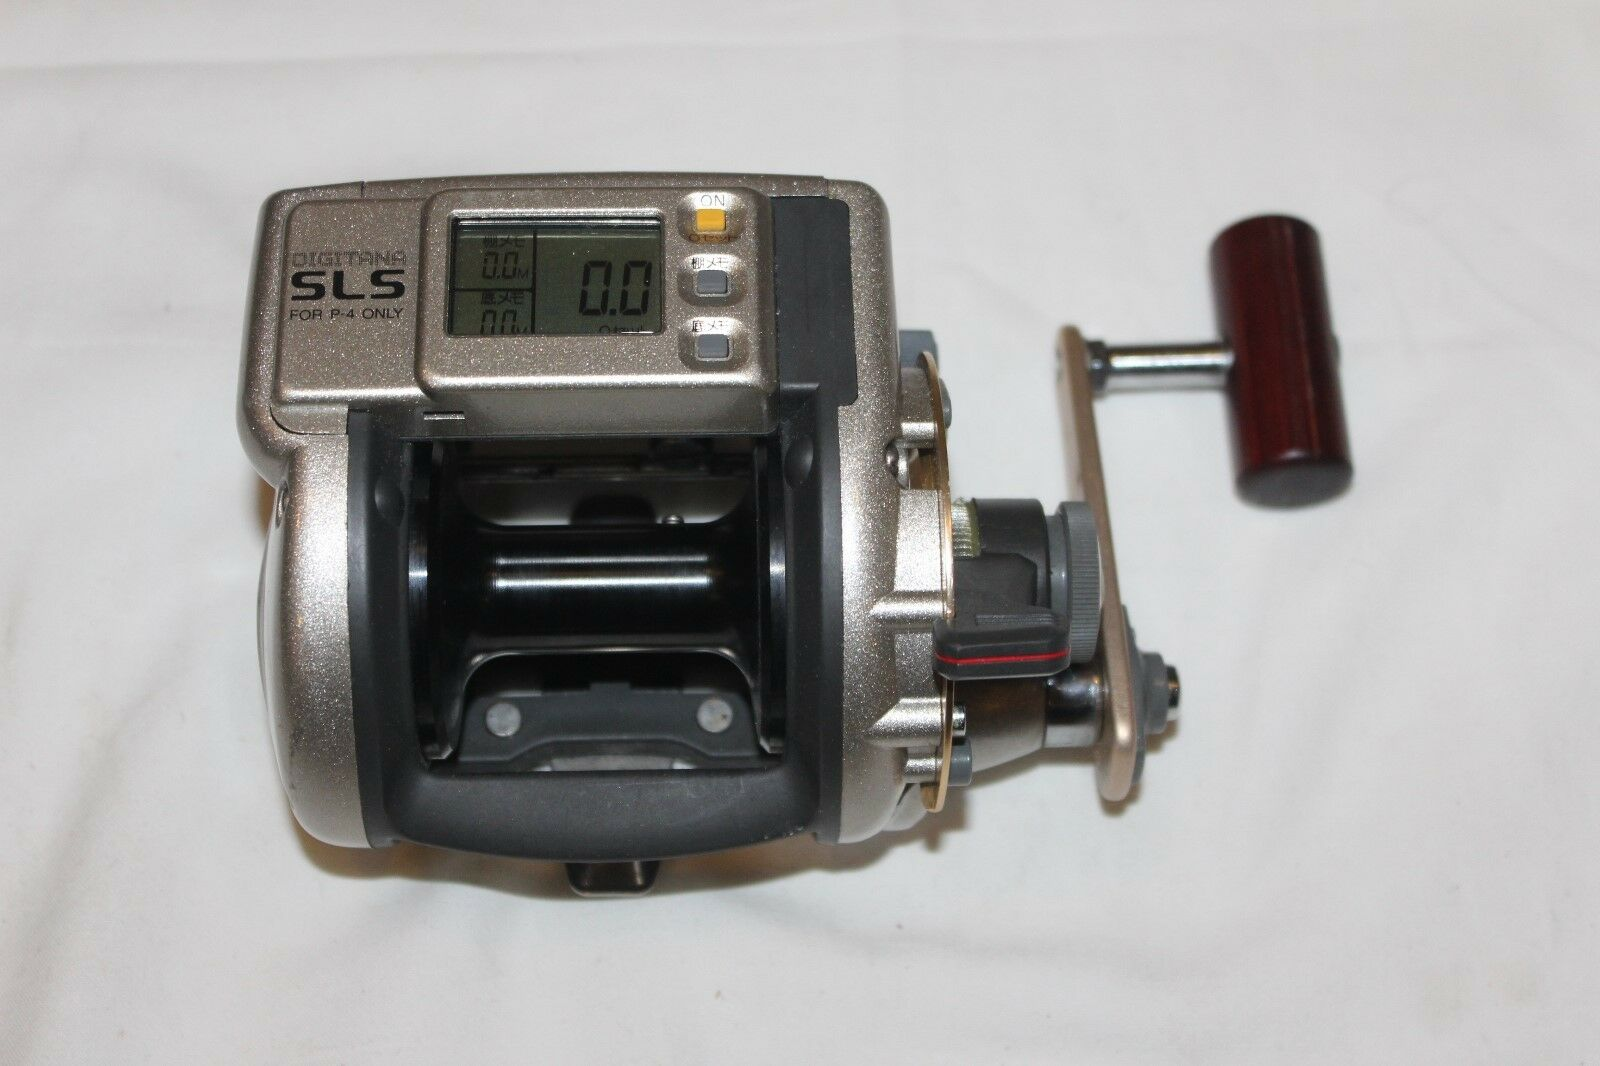 SHIMANO DIGITANA SLS--3000-LEVER DRAG-MADE IN  JAPAN -Nr 768